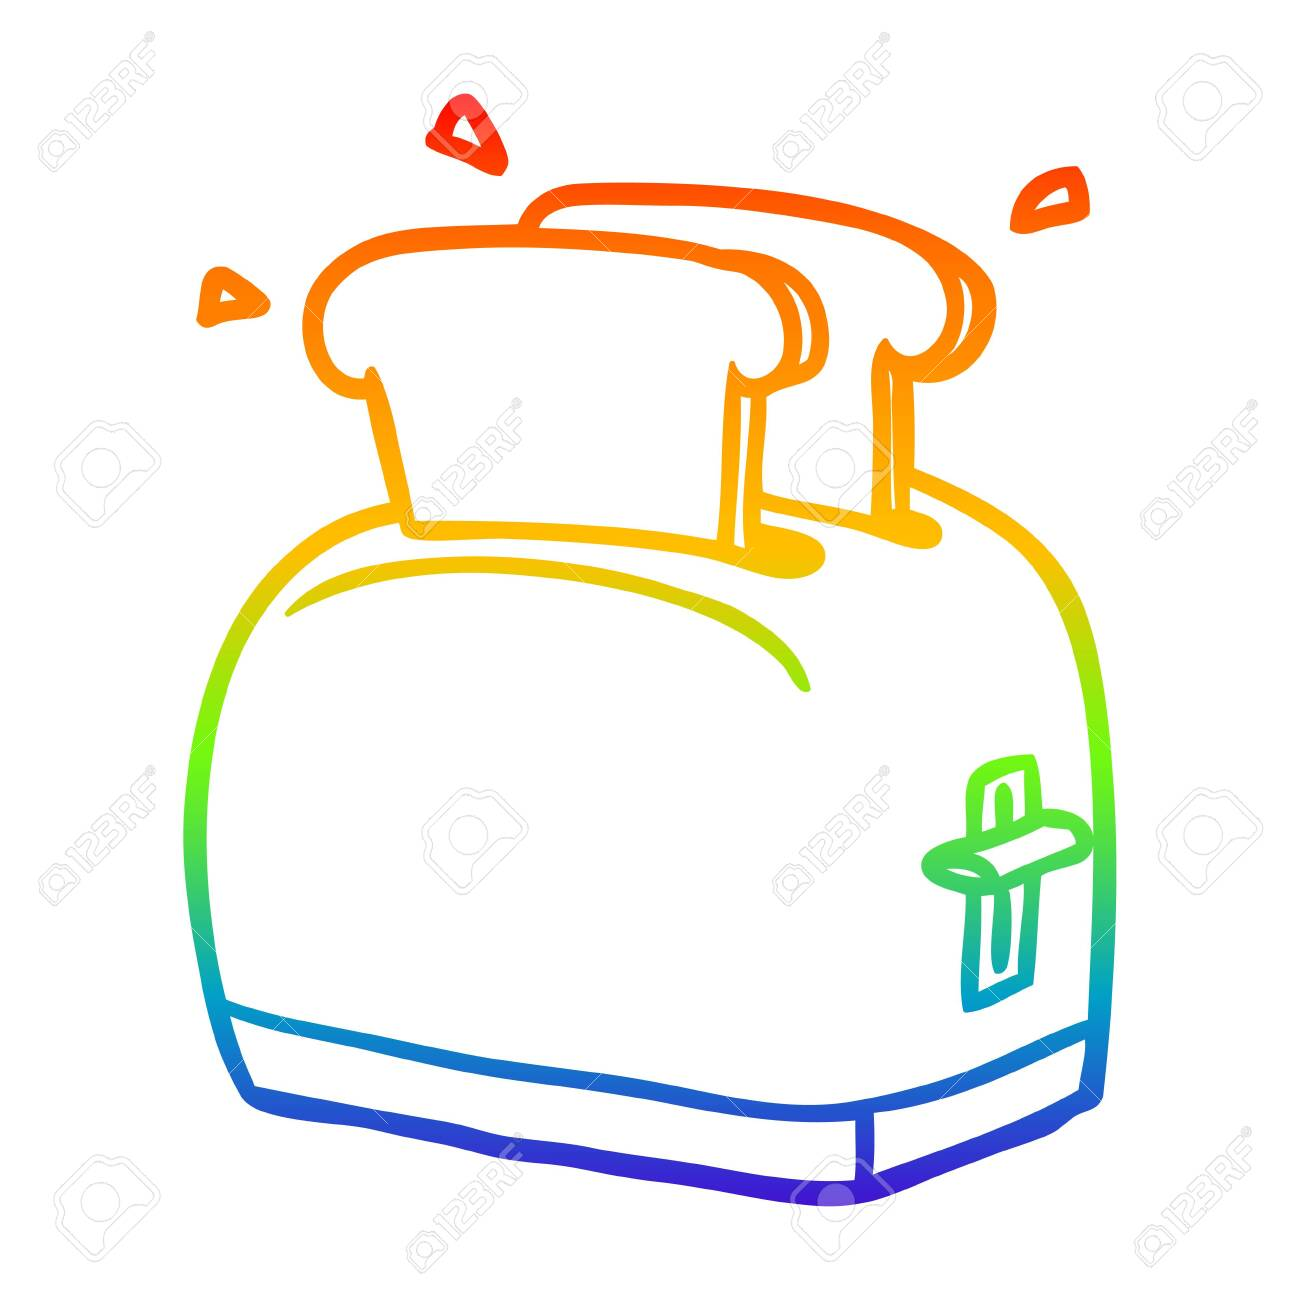 Free Toaster Cliparts, Download Free Clip Art, Free - Transparent  Background Toaster Clipart, HD Png Download - vhv